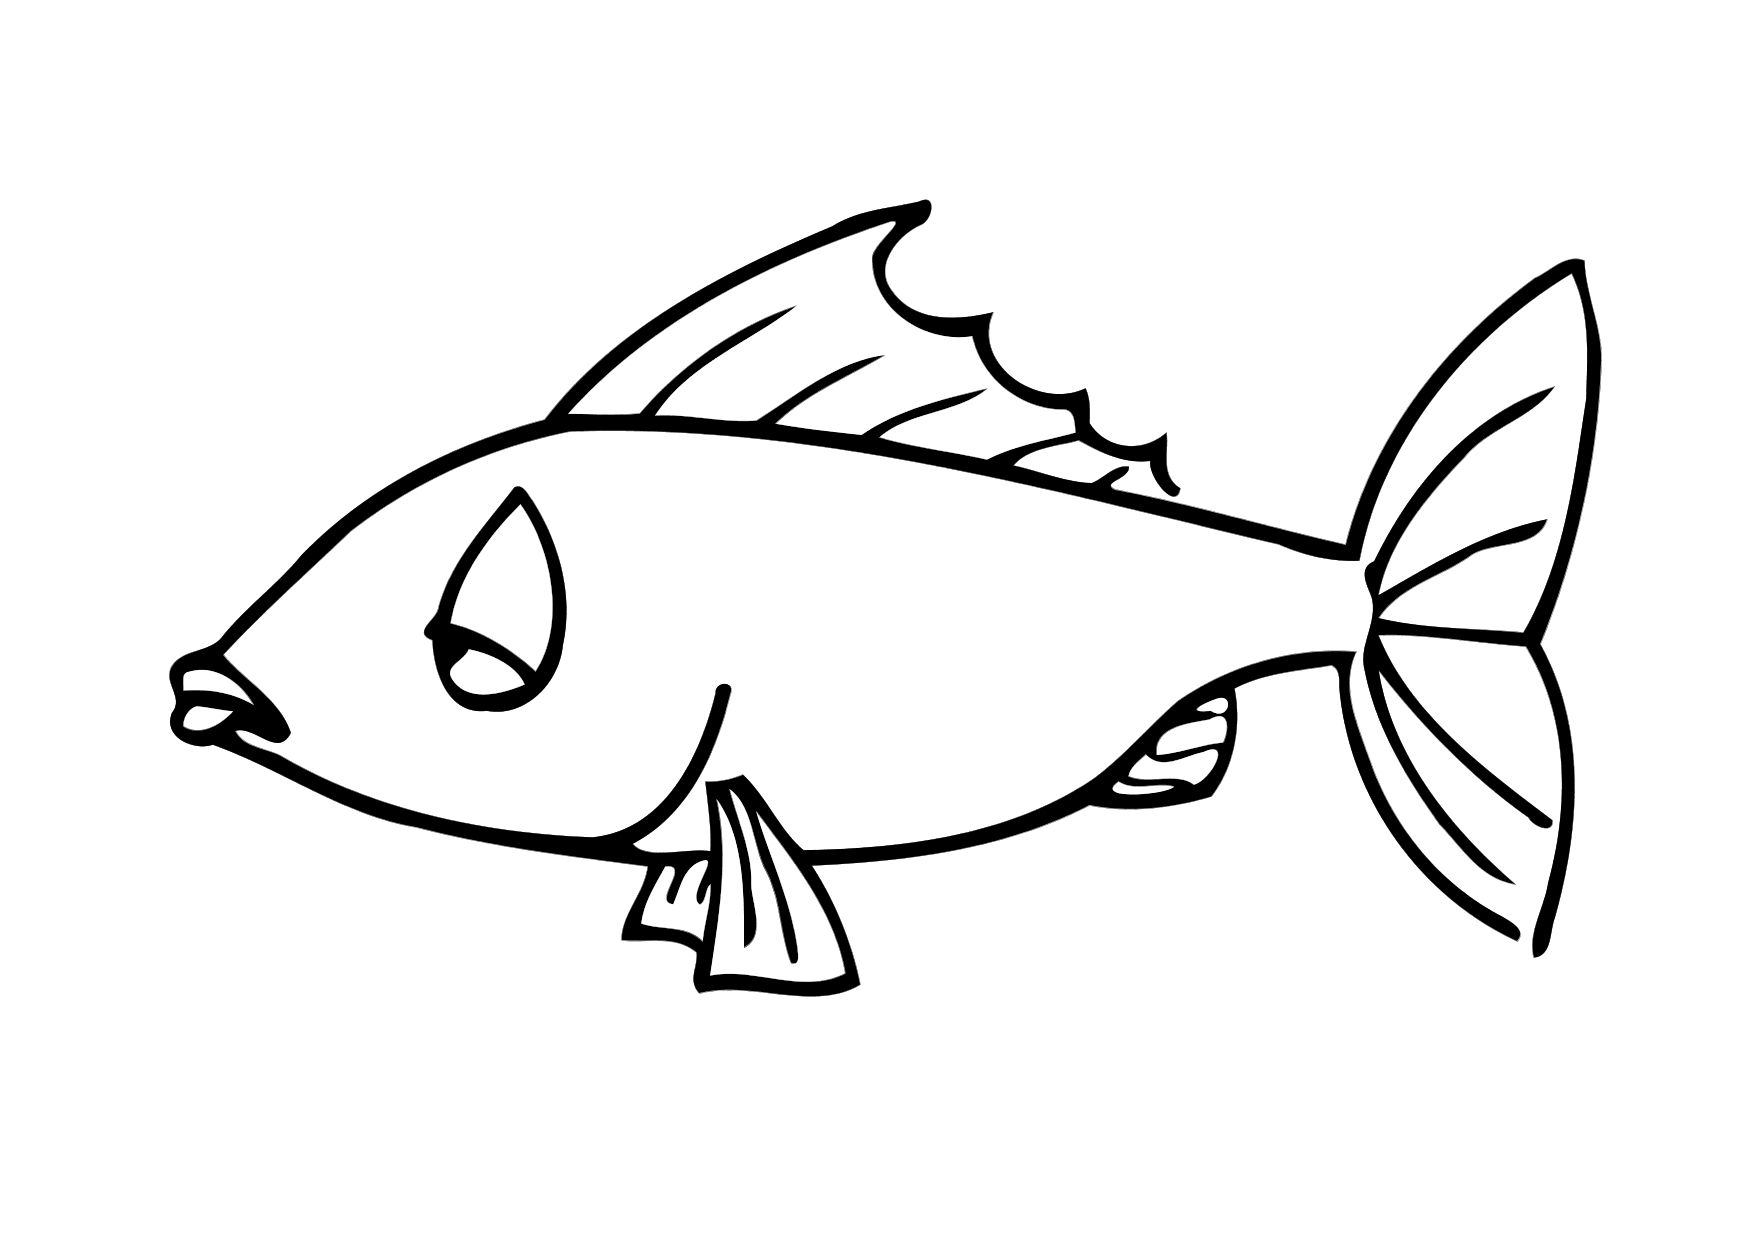 1750x1240 Koi Fish Coloring Page